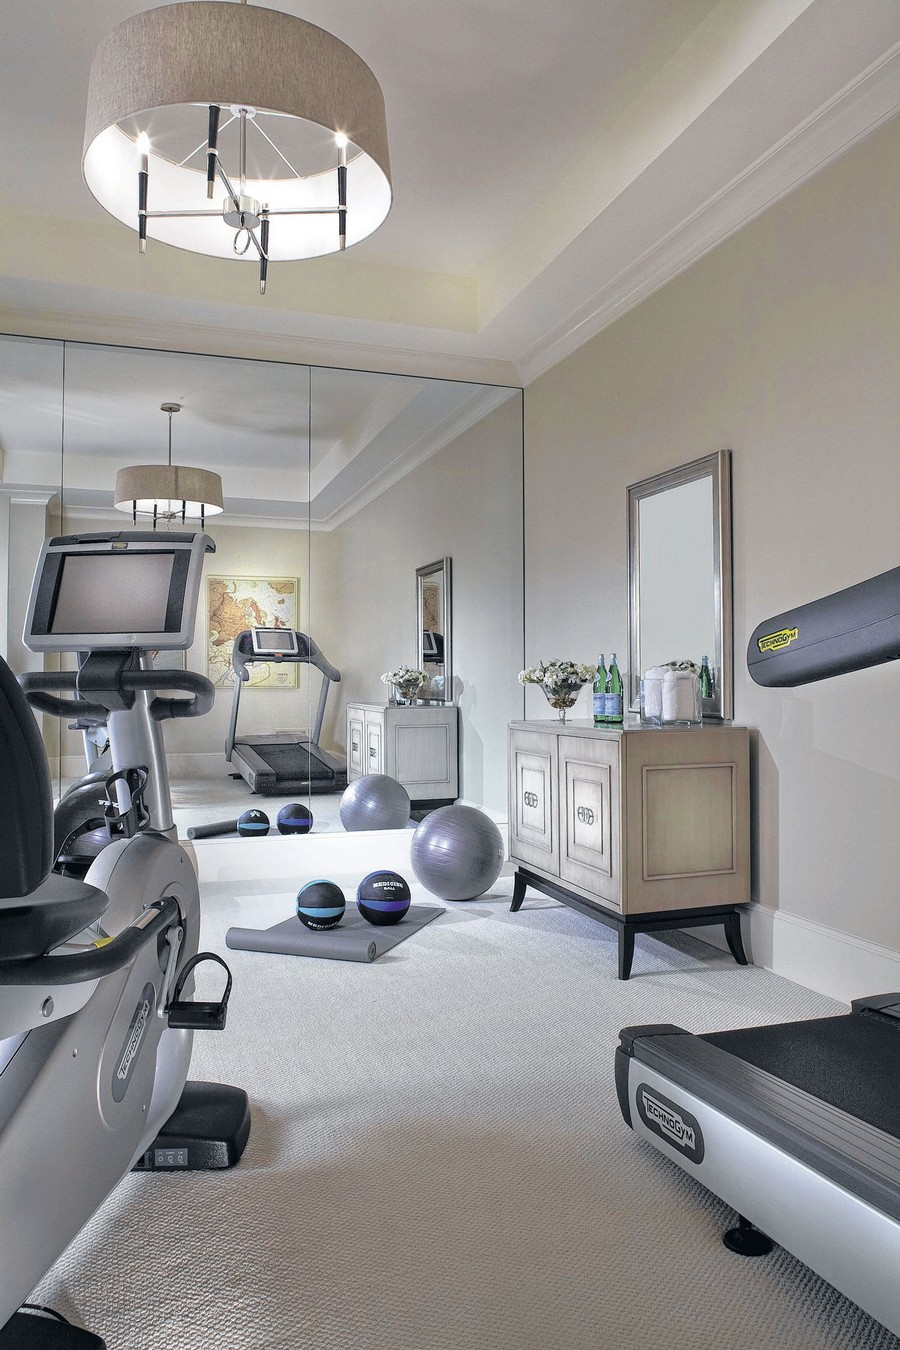 Home Gym Interior Design Tips Home Interior Design Kitchen And Bathroom Designs Architecture